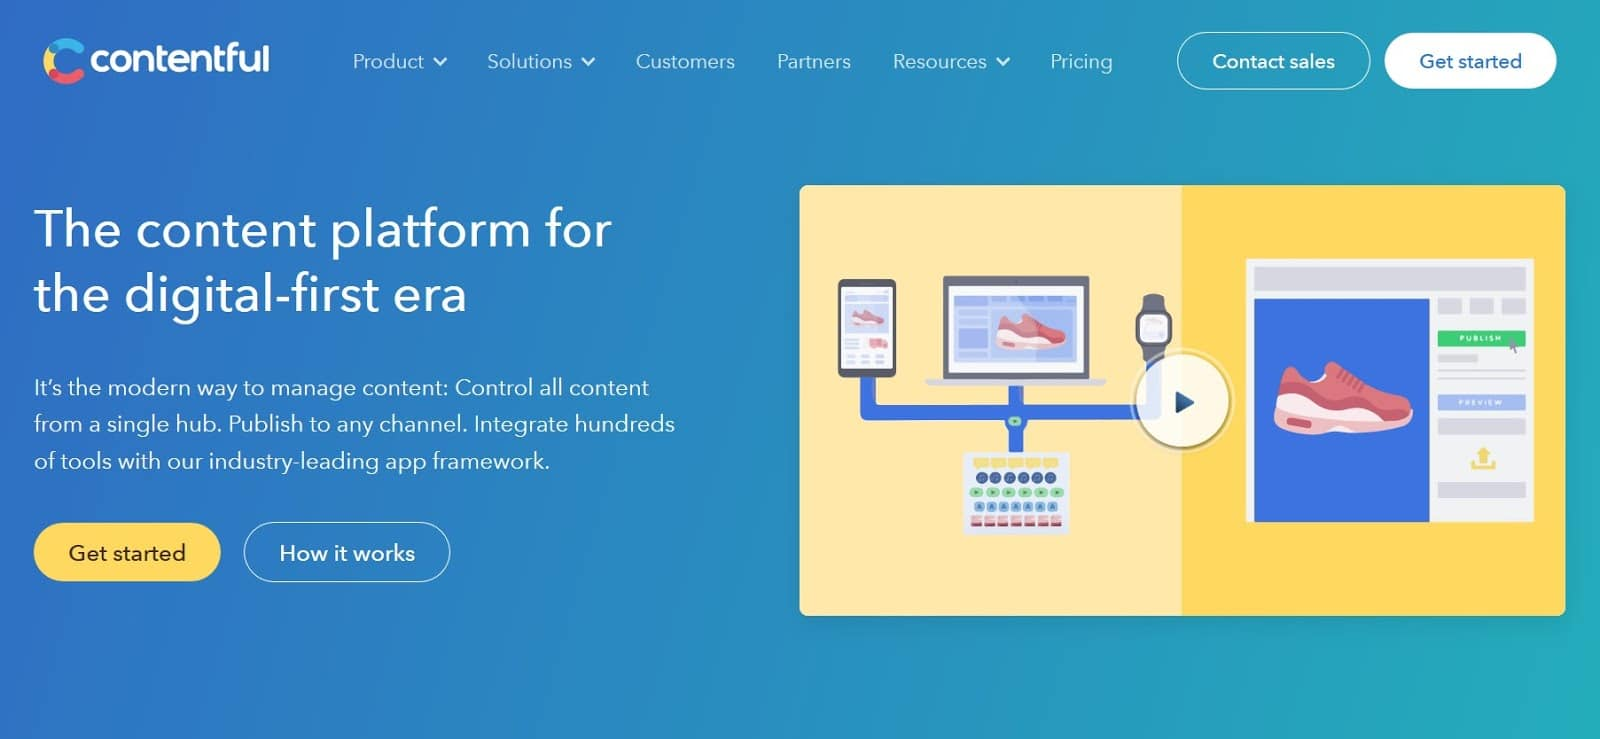 cms software 9 contentful